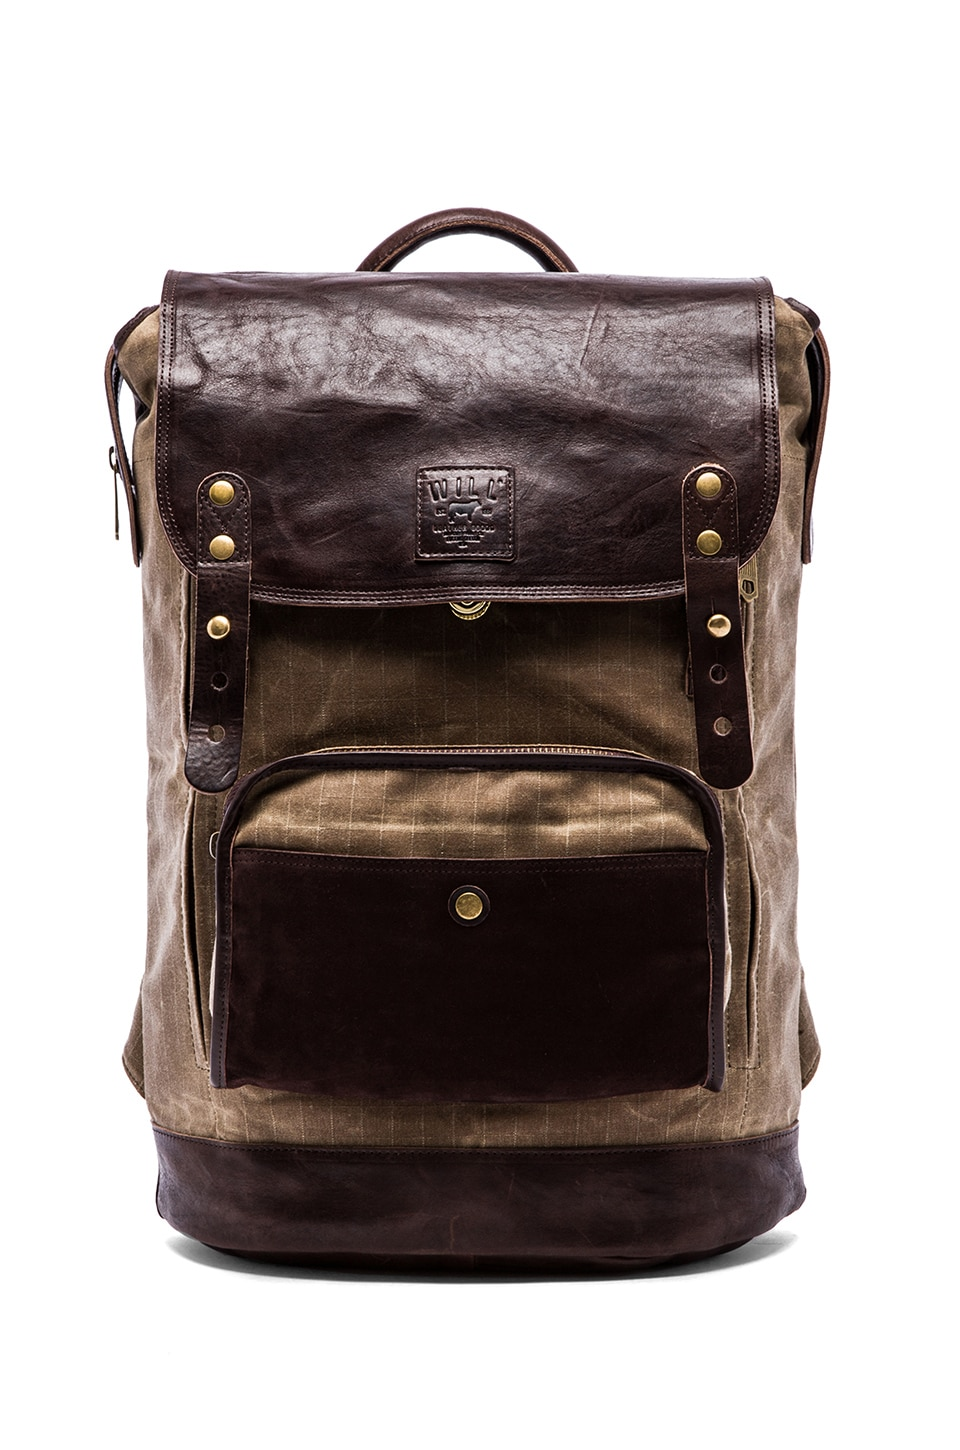 WILL Leather Goods The Frontier Backpack in Tan Brown